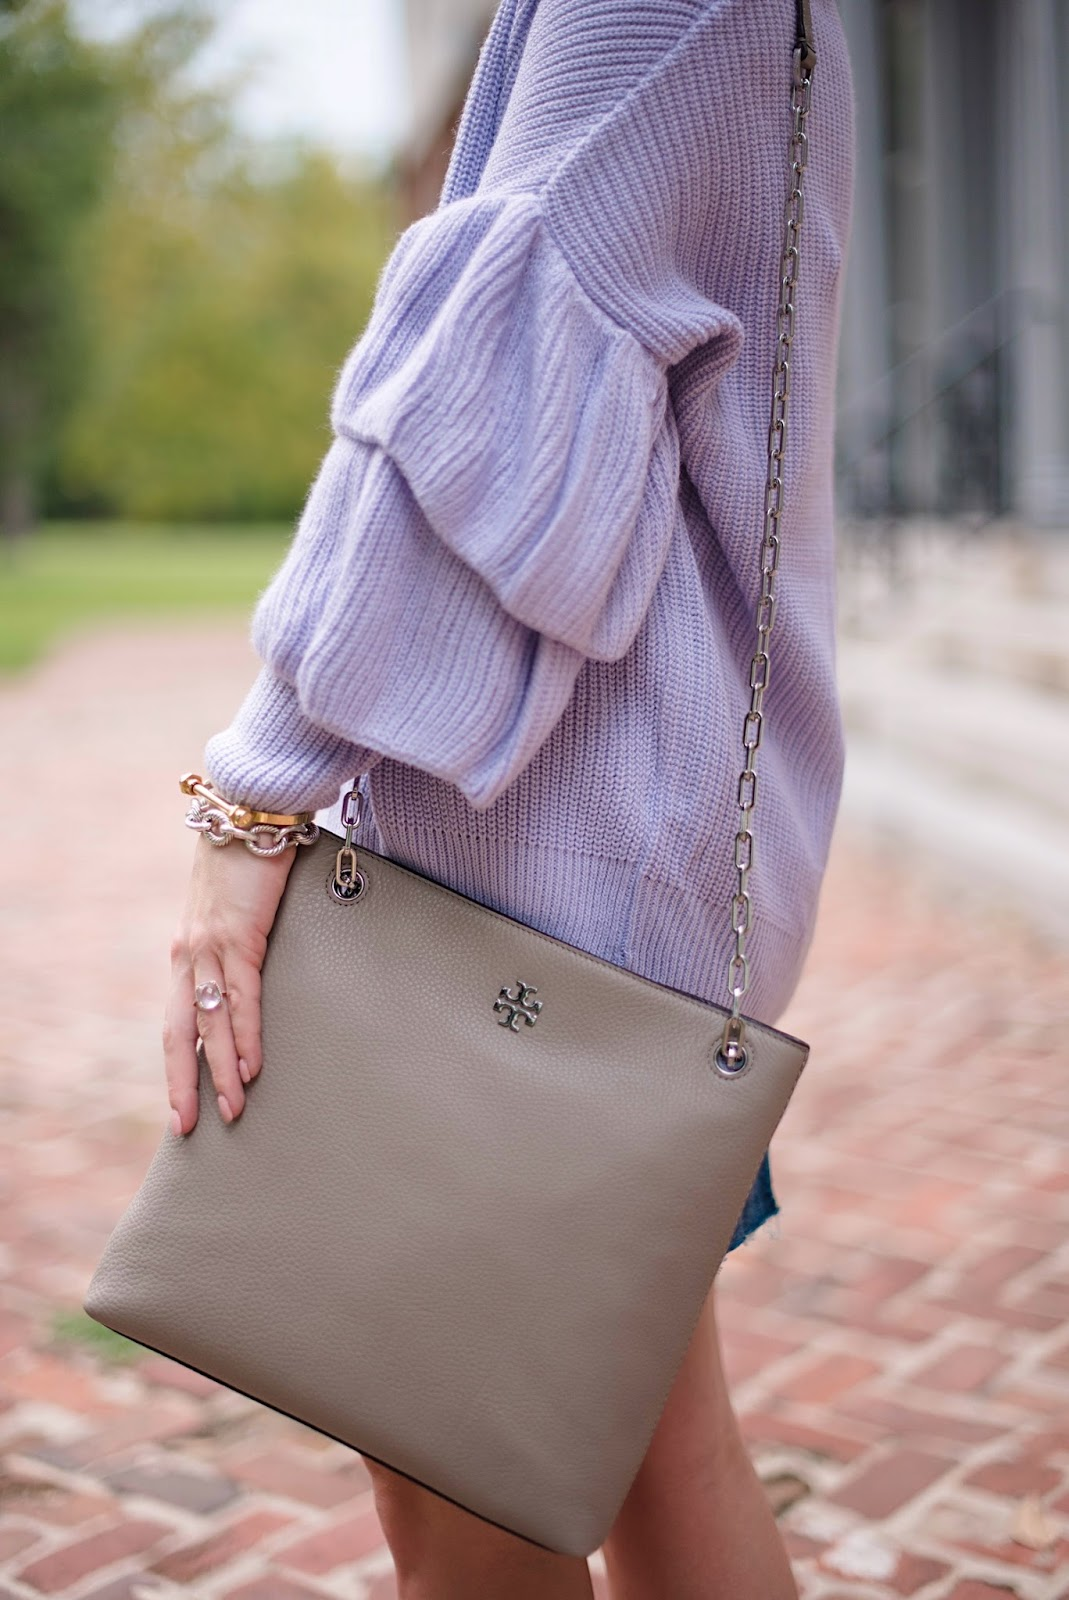 Tory Burch Bag - Something Delightful Blog (click through for the full post)